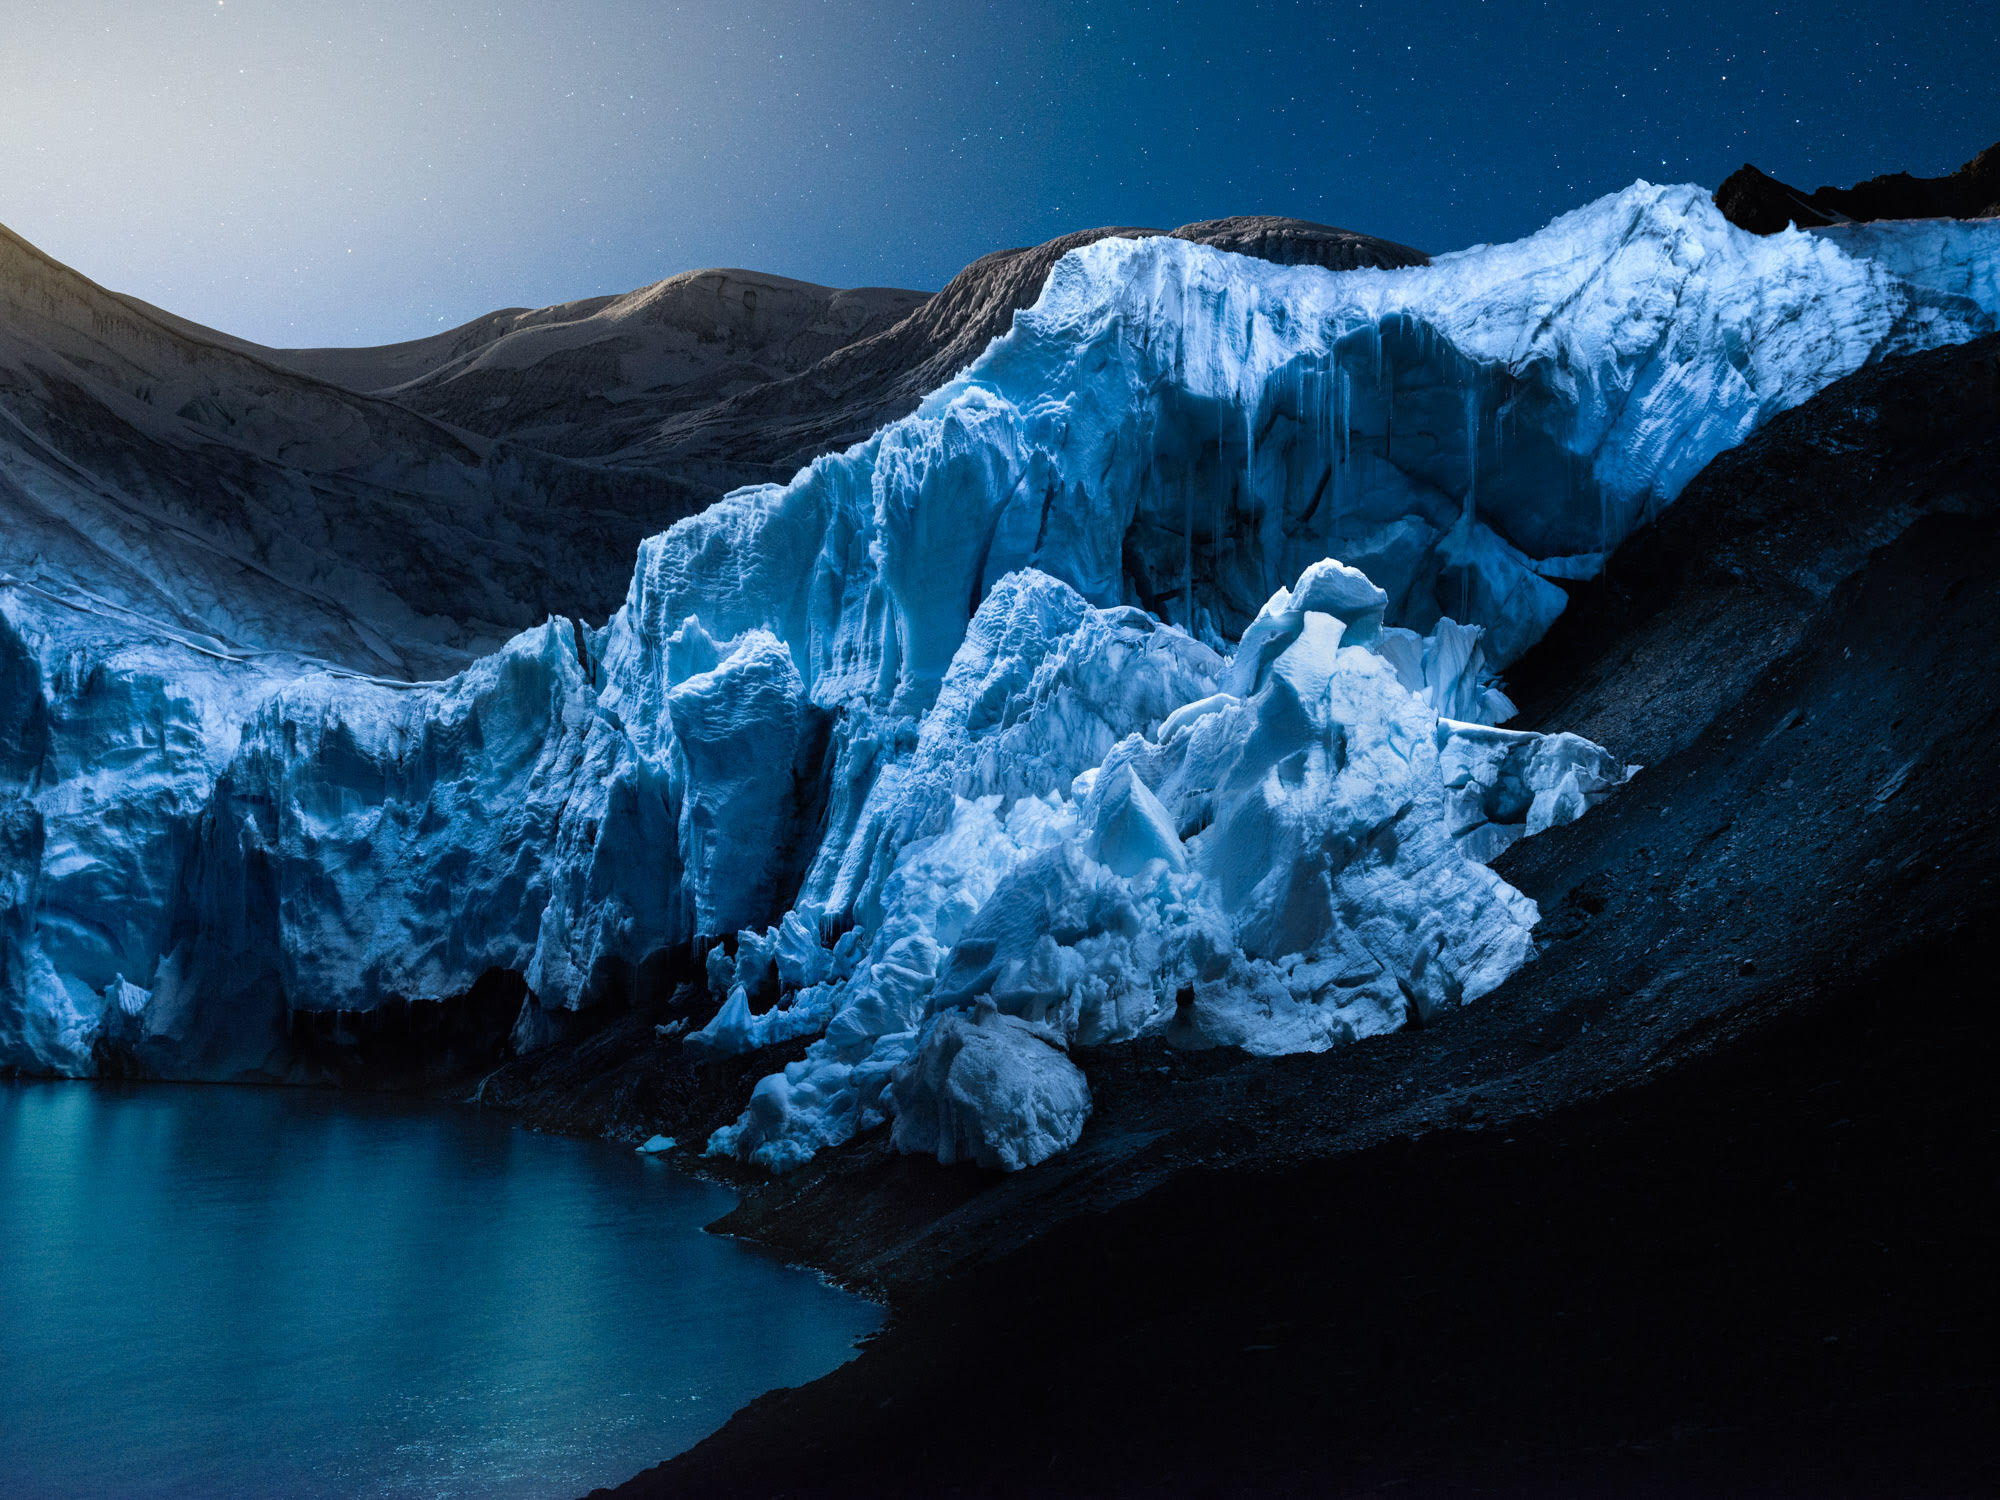 A Rare Tropical Glacier Captured at Night in Drone